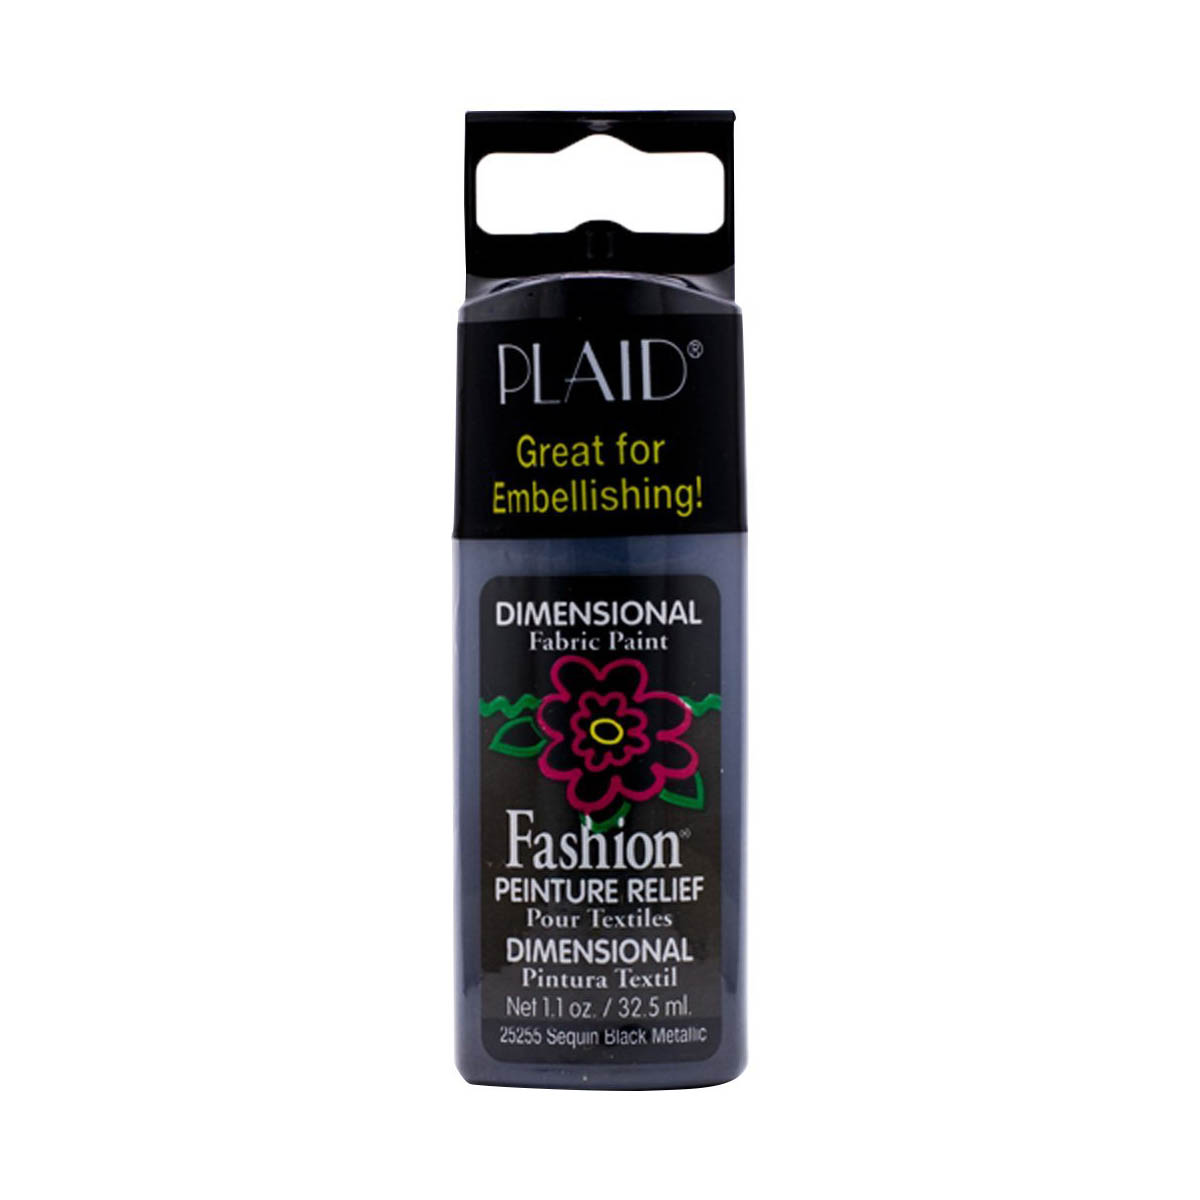 Fashion ® Dimensional Fabric Paint  - Metallic - Sequin Black - 25255